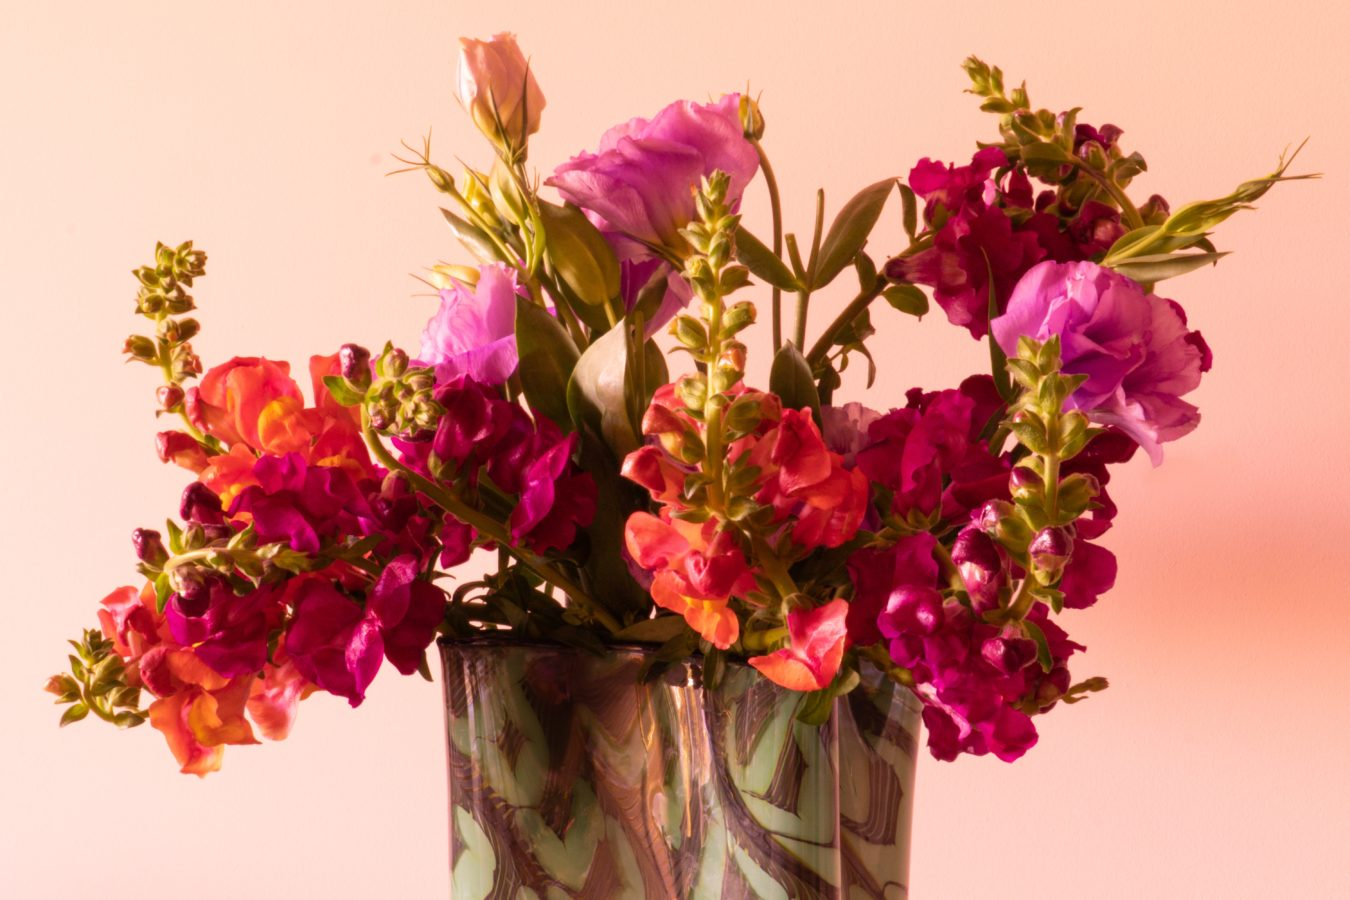 How to style a beautiful floral arrangement that'll brighten up any room